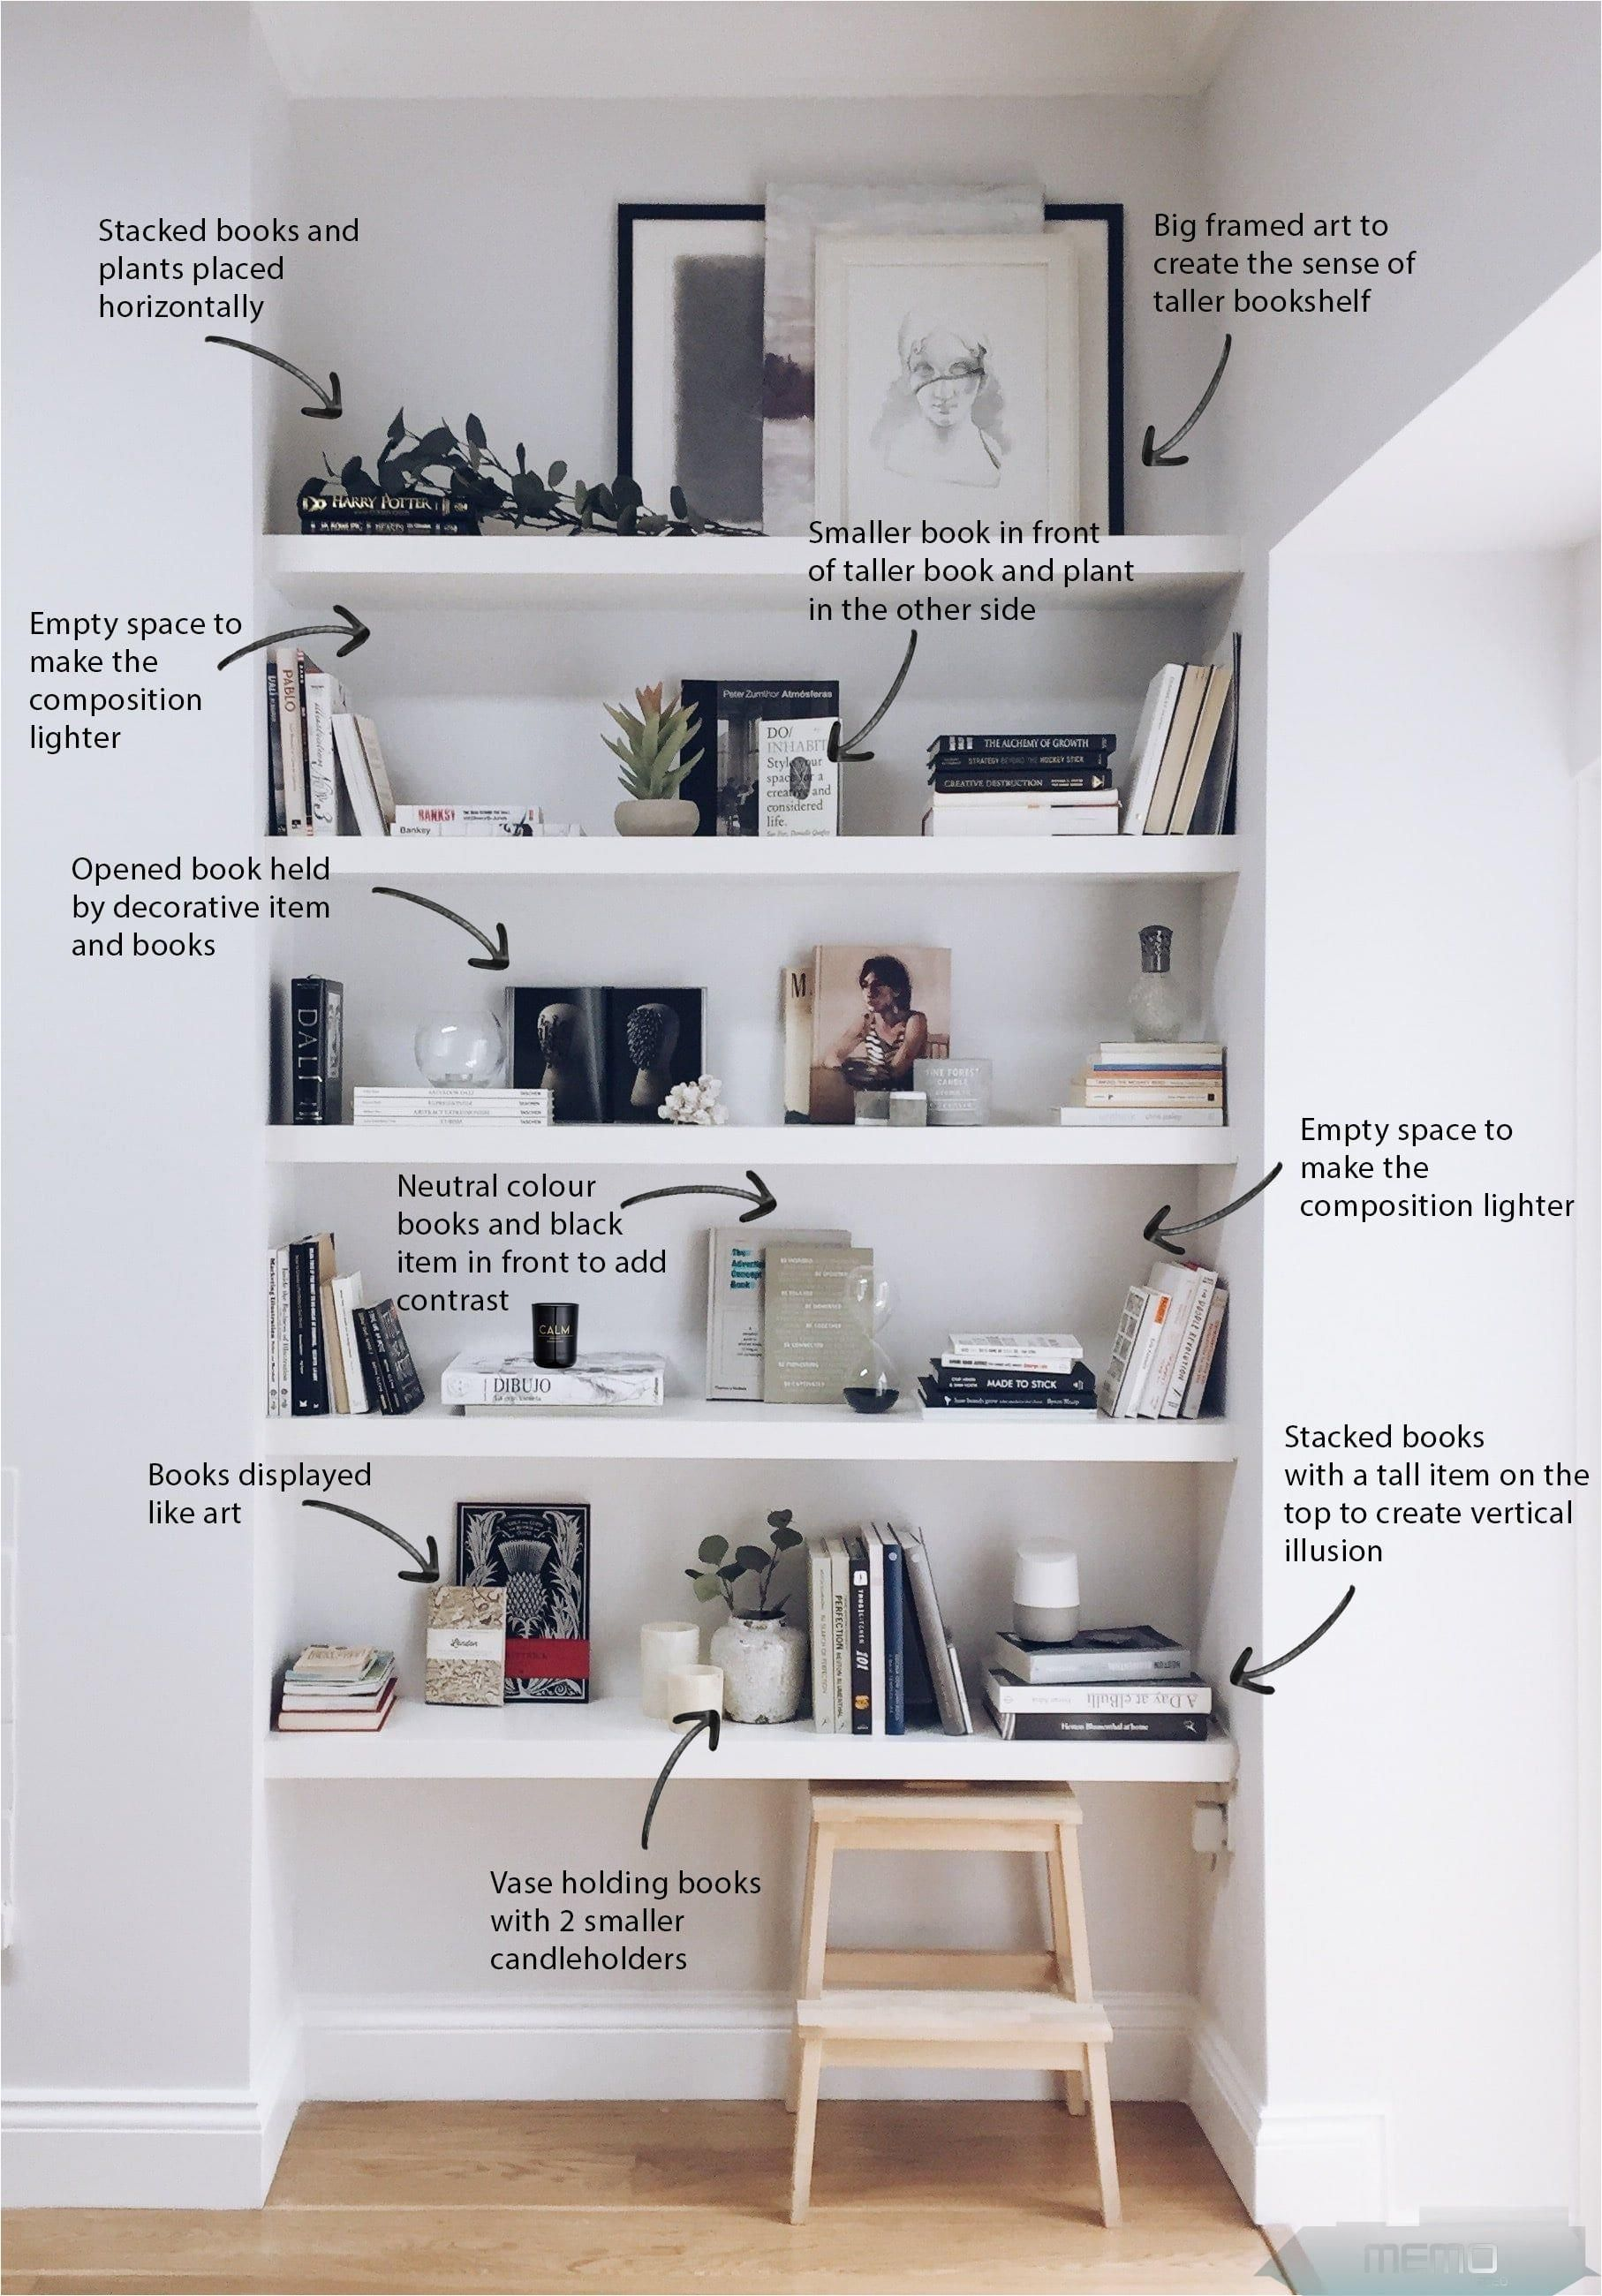 Jan 10, 10 - How to decorate your shelves in a minimal and